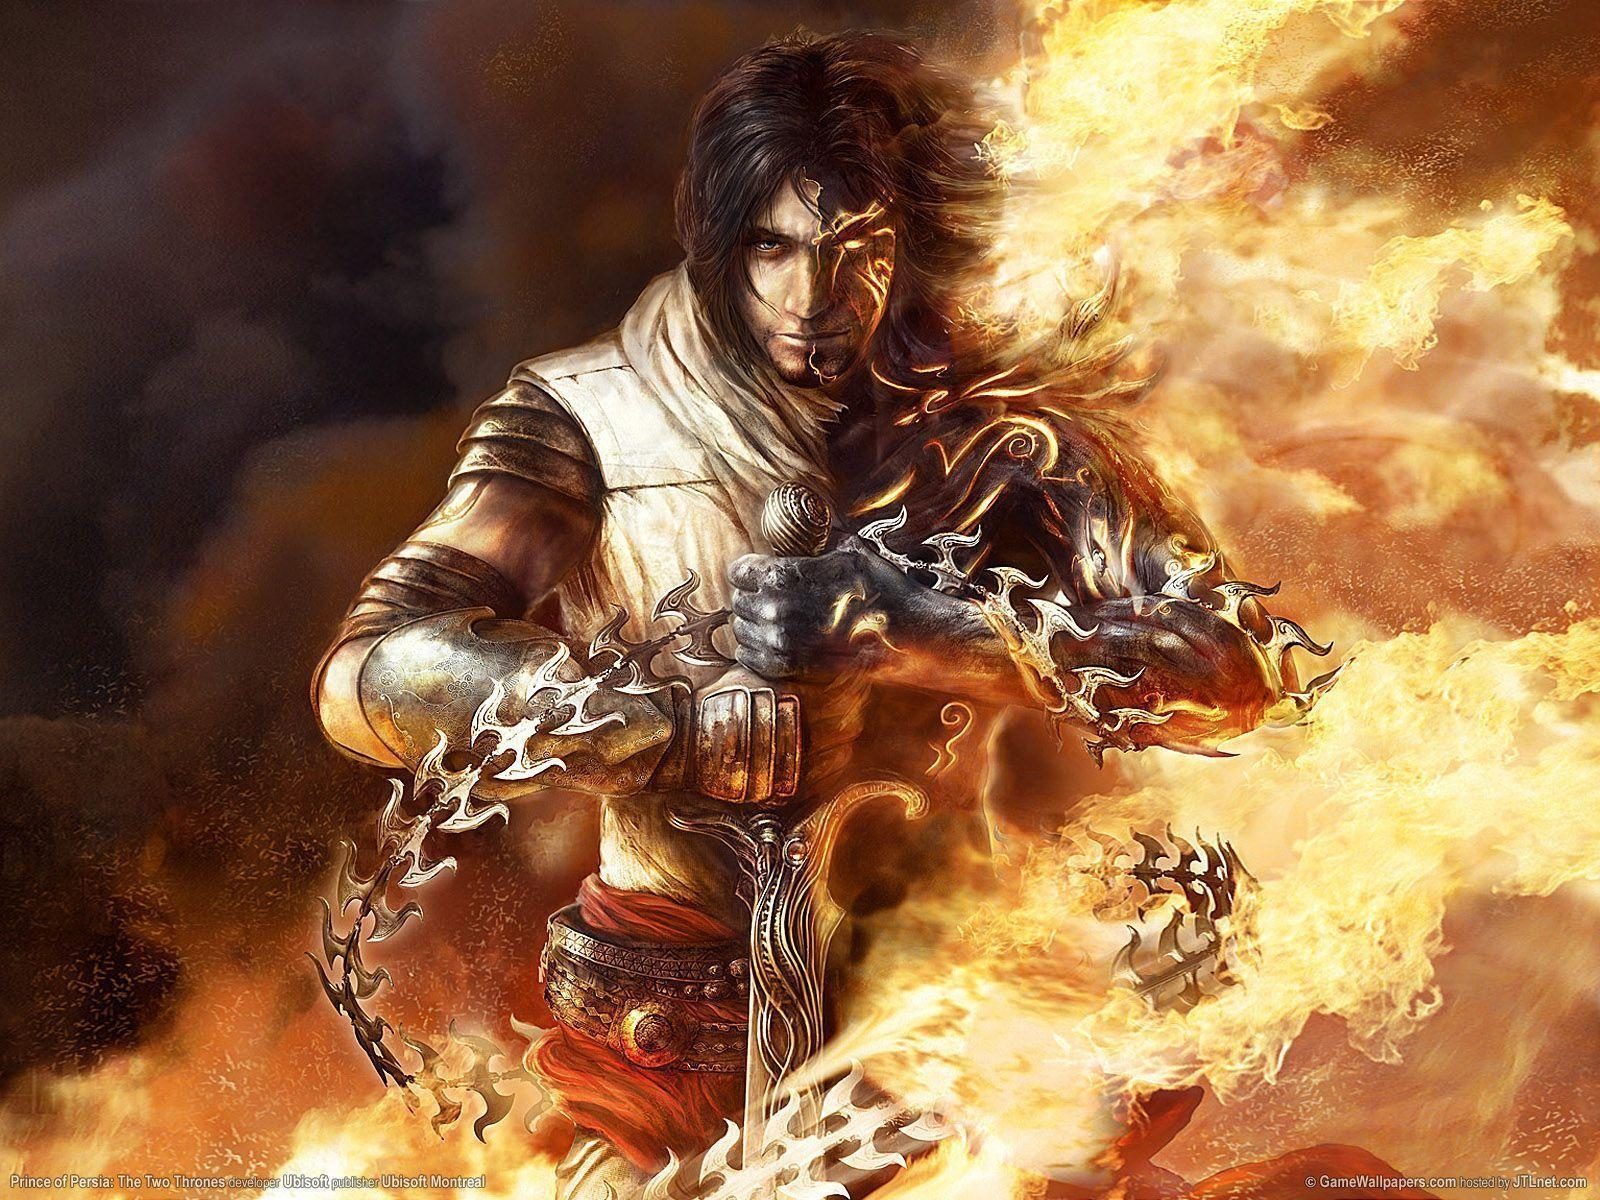 Prince Of Persia Game Wallpapers Top Free Prince Of Persia Game